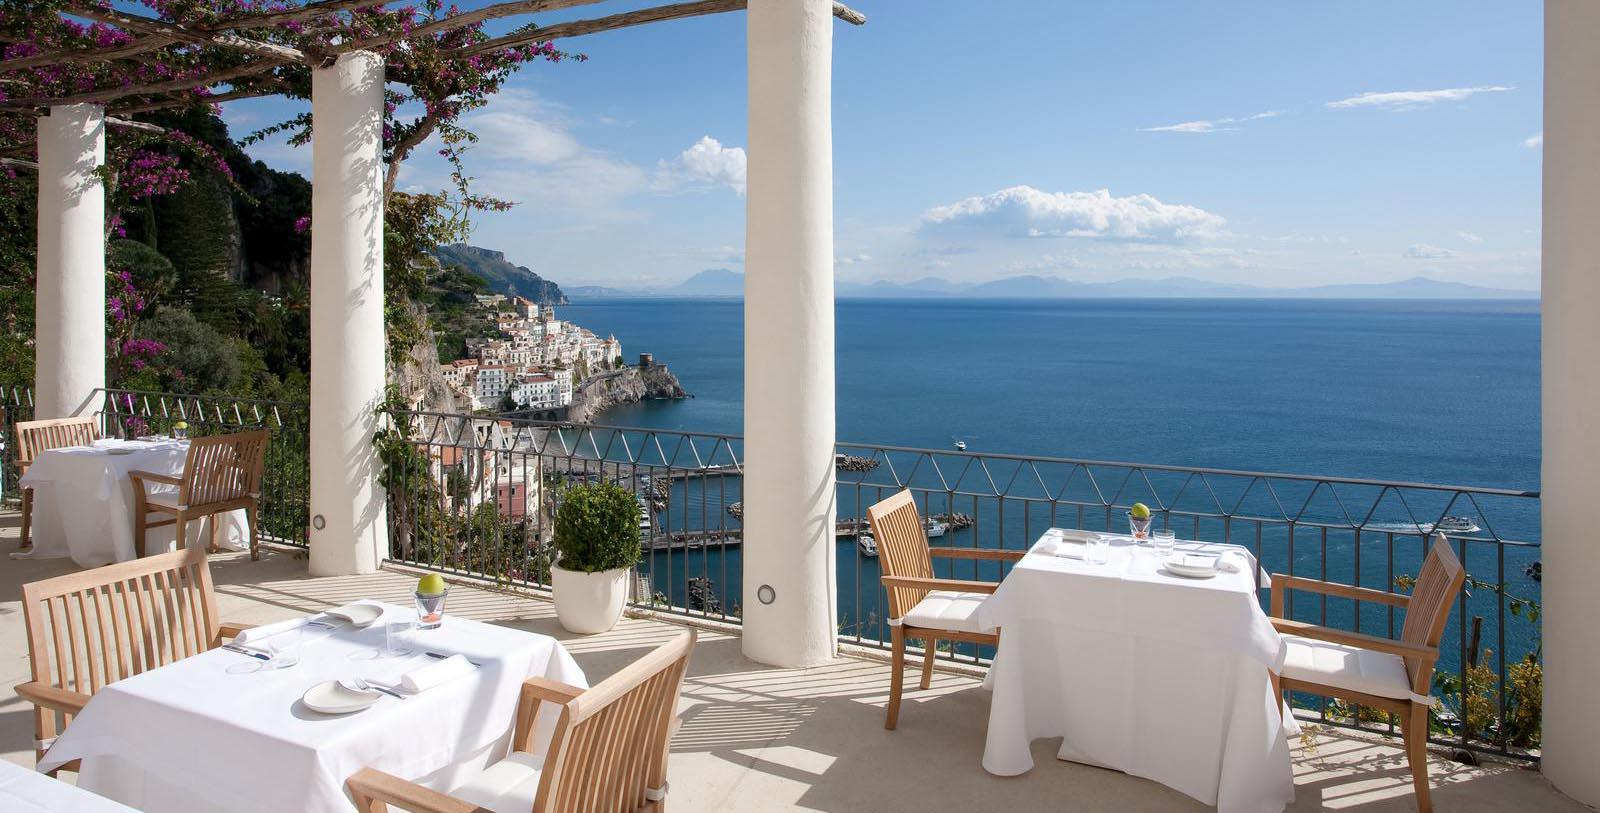 Image of the dining area at NH Collection Grand Hotel Convento di Amalfi in Amalfi, Italy